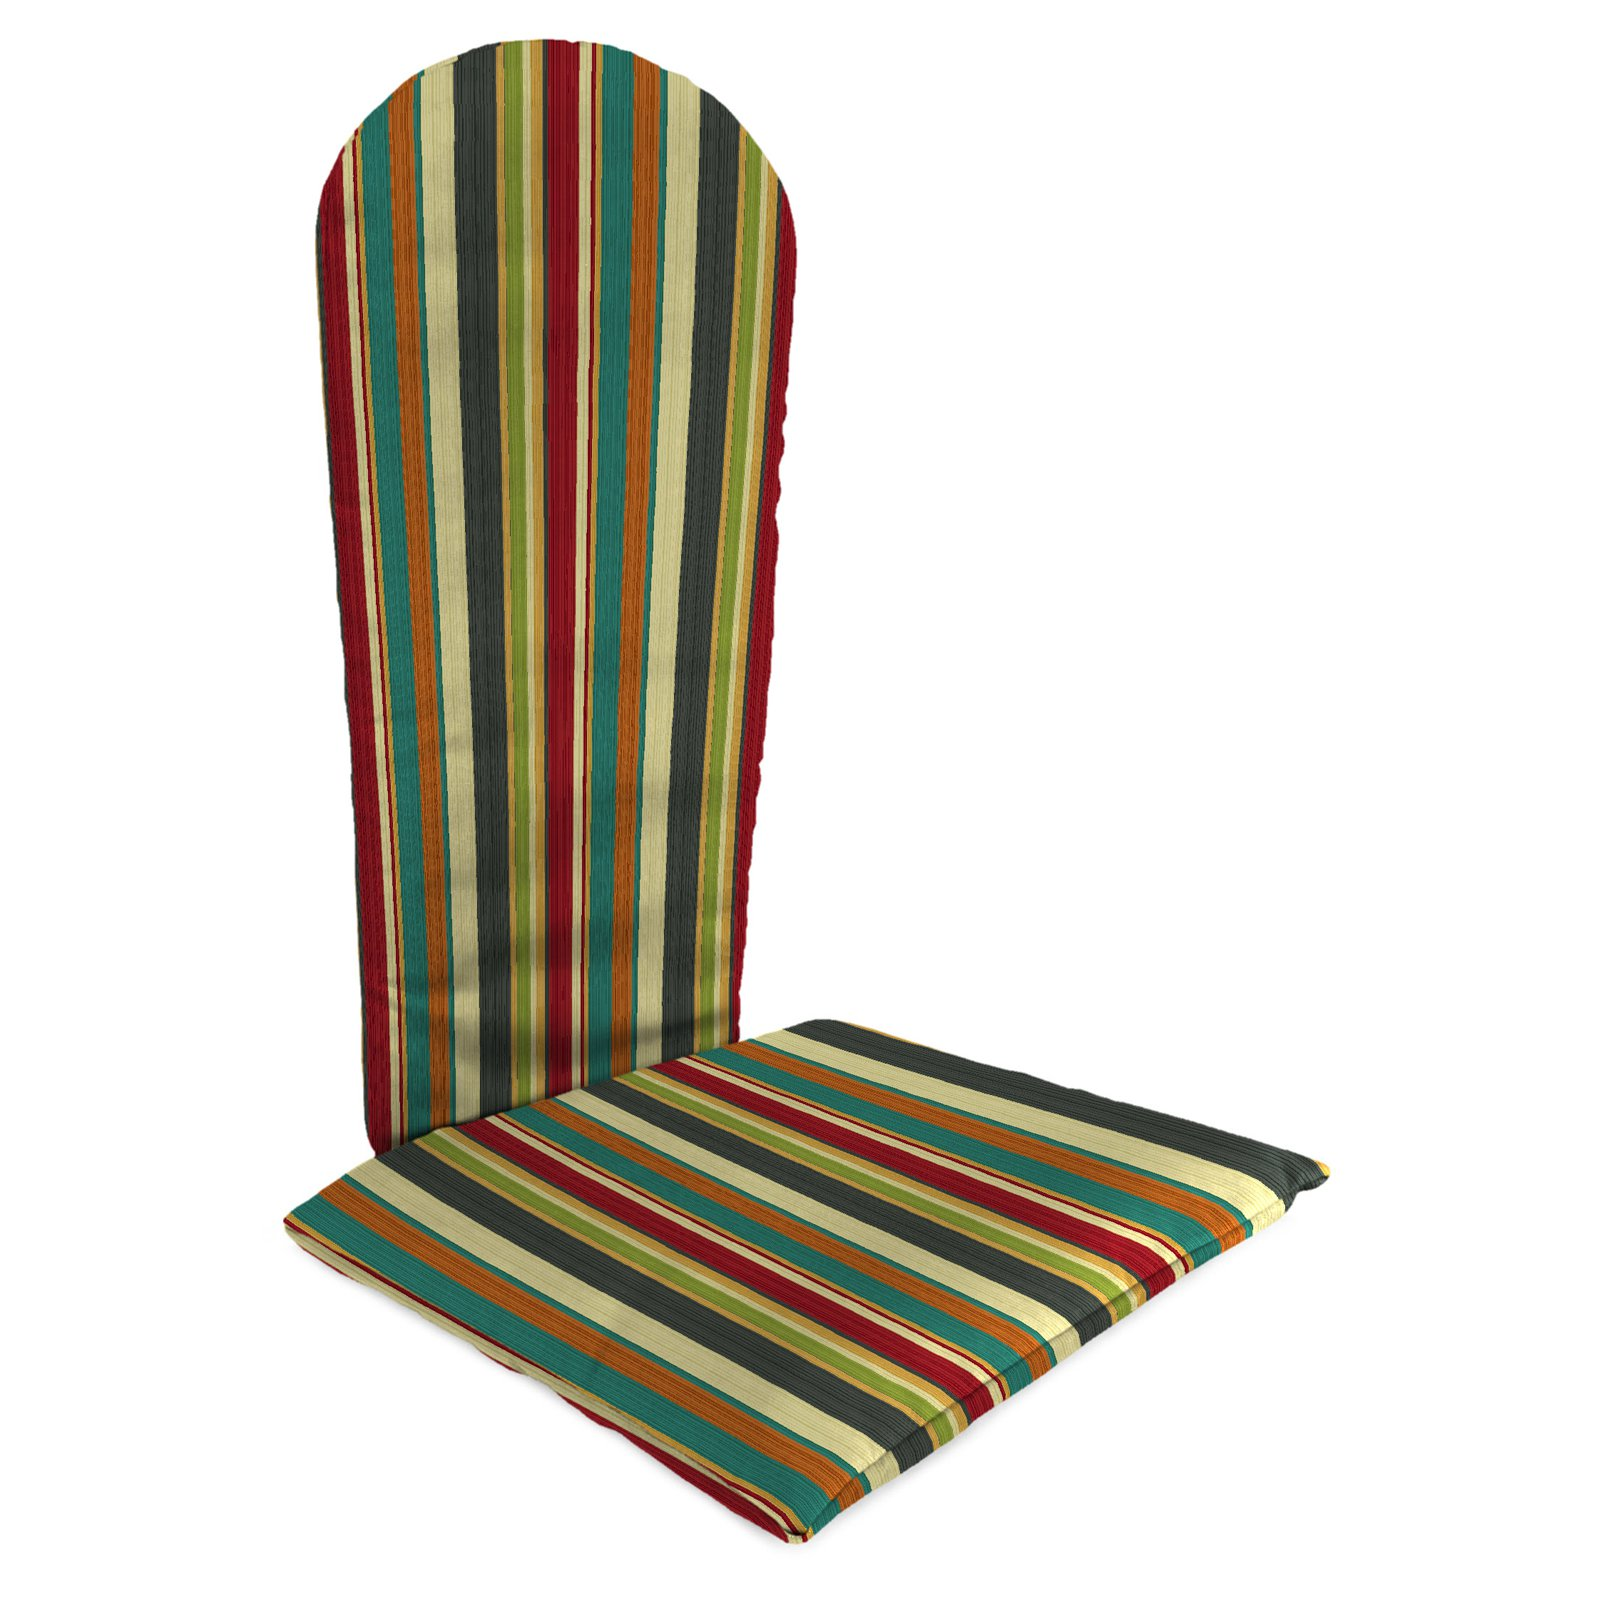 Jordan Manufacturing Knife Edge Outdoor Draw The Line Adirondack Chair Cushion